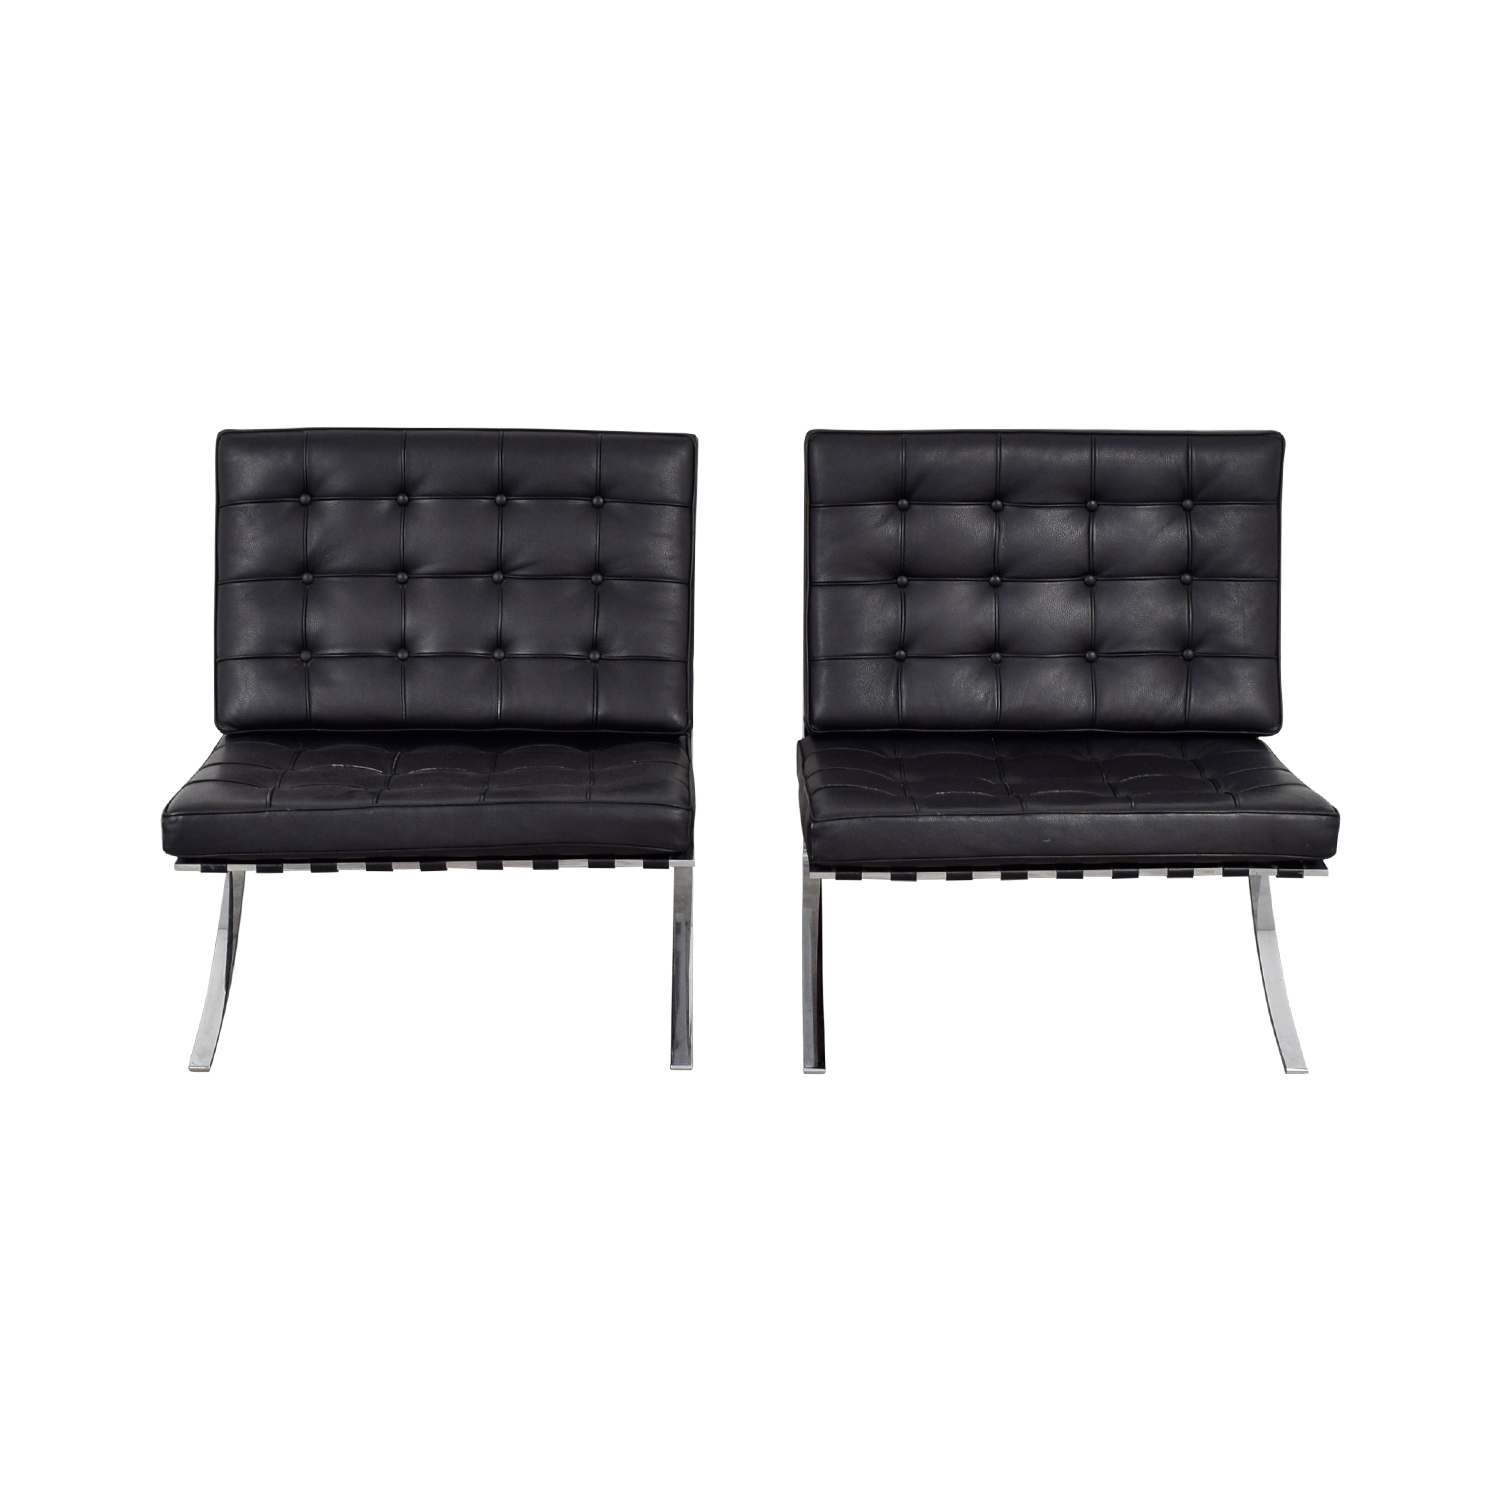 74 off black and chrome tufted barcelona style chairs chairs